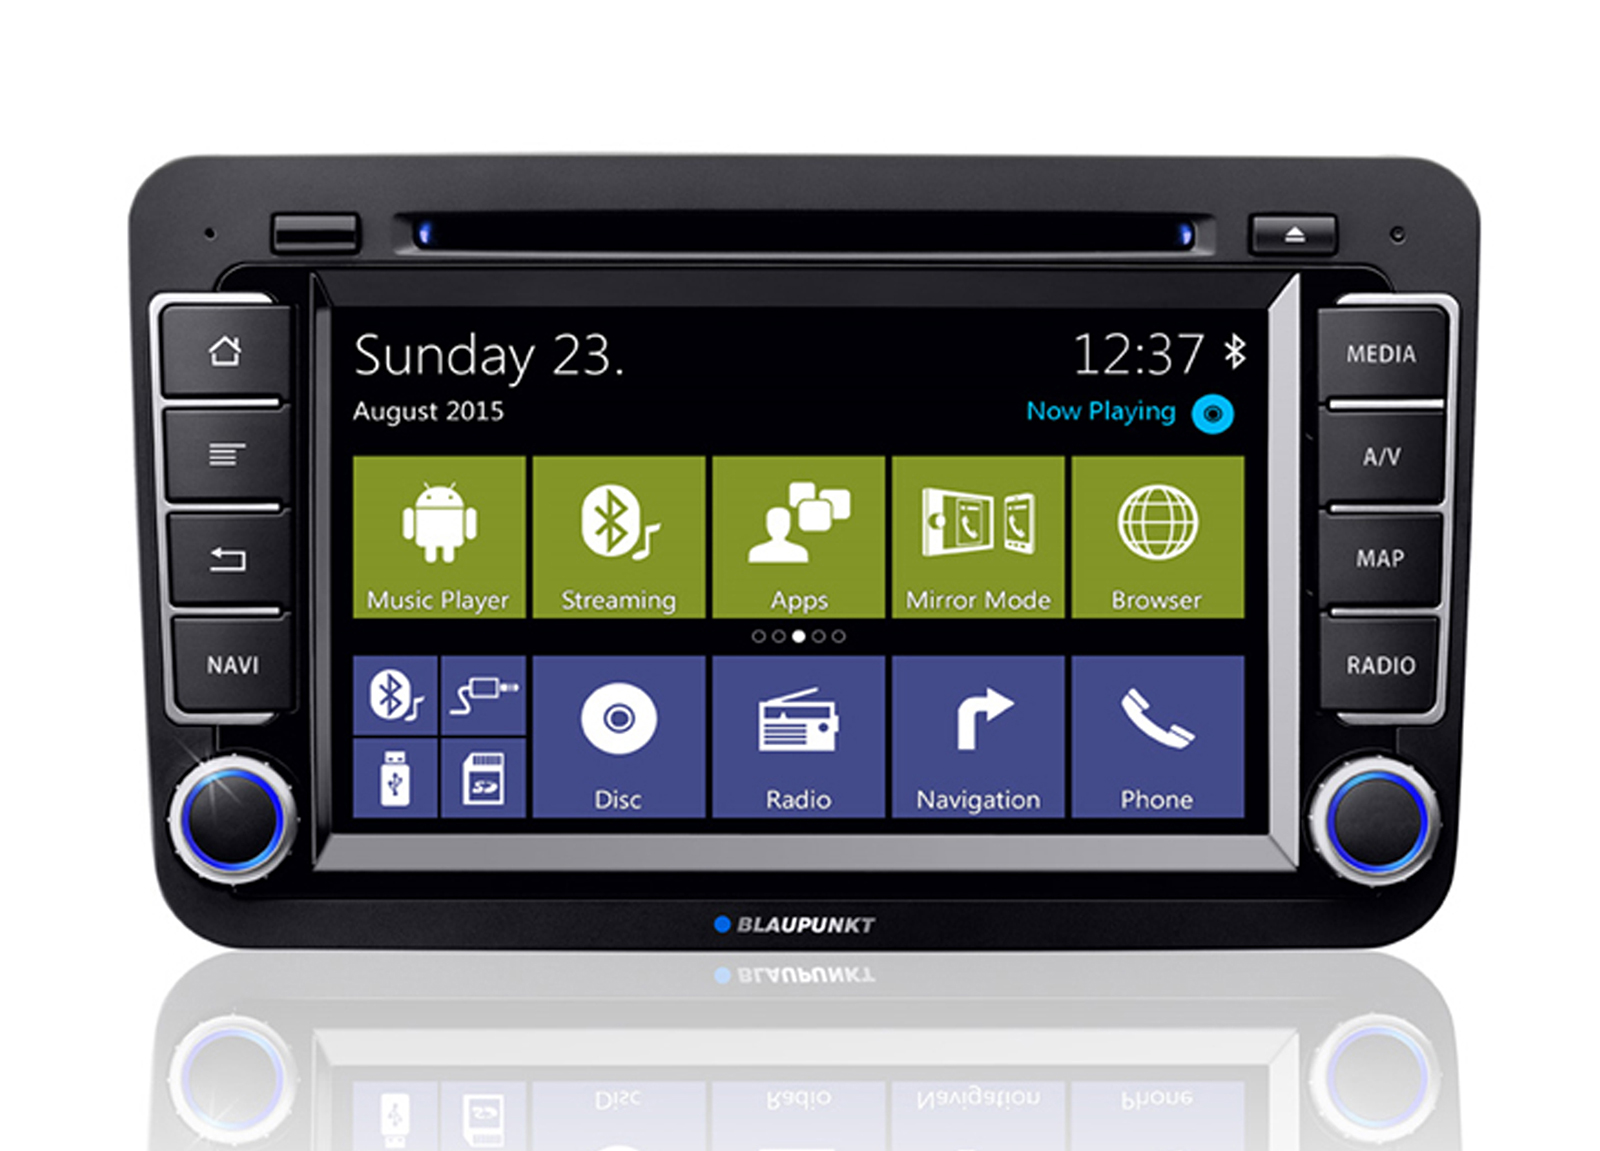 blaupunkt bremen 975 android autoradio f r den din 2 schacht navigation. Black Bedroom Furniture Sets. Home Design Ideas